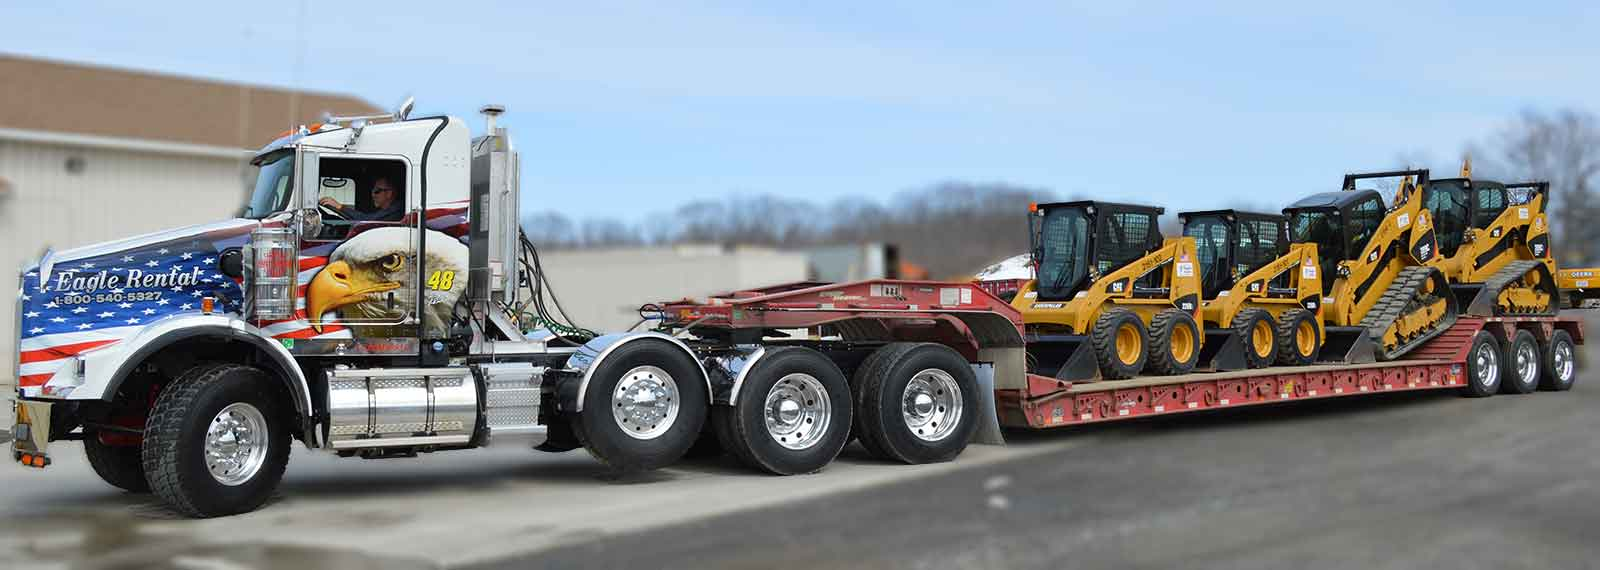 Slider-Eagle-Rental-Truck-Transport-Rentals